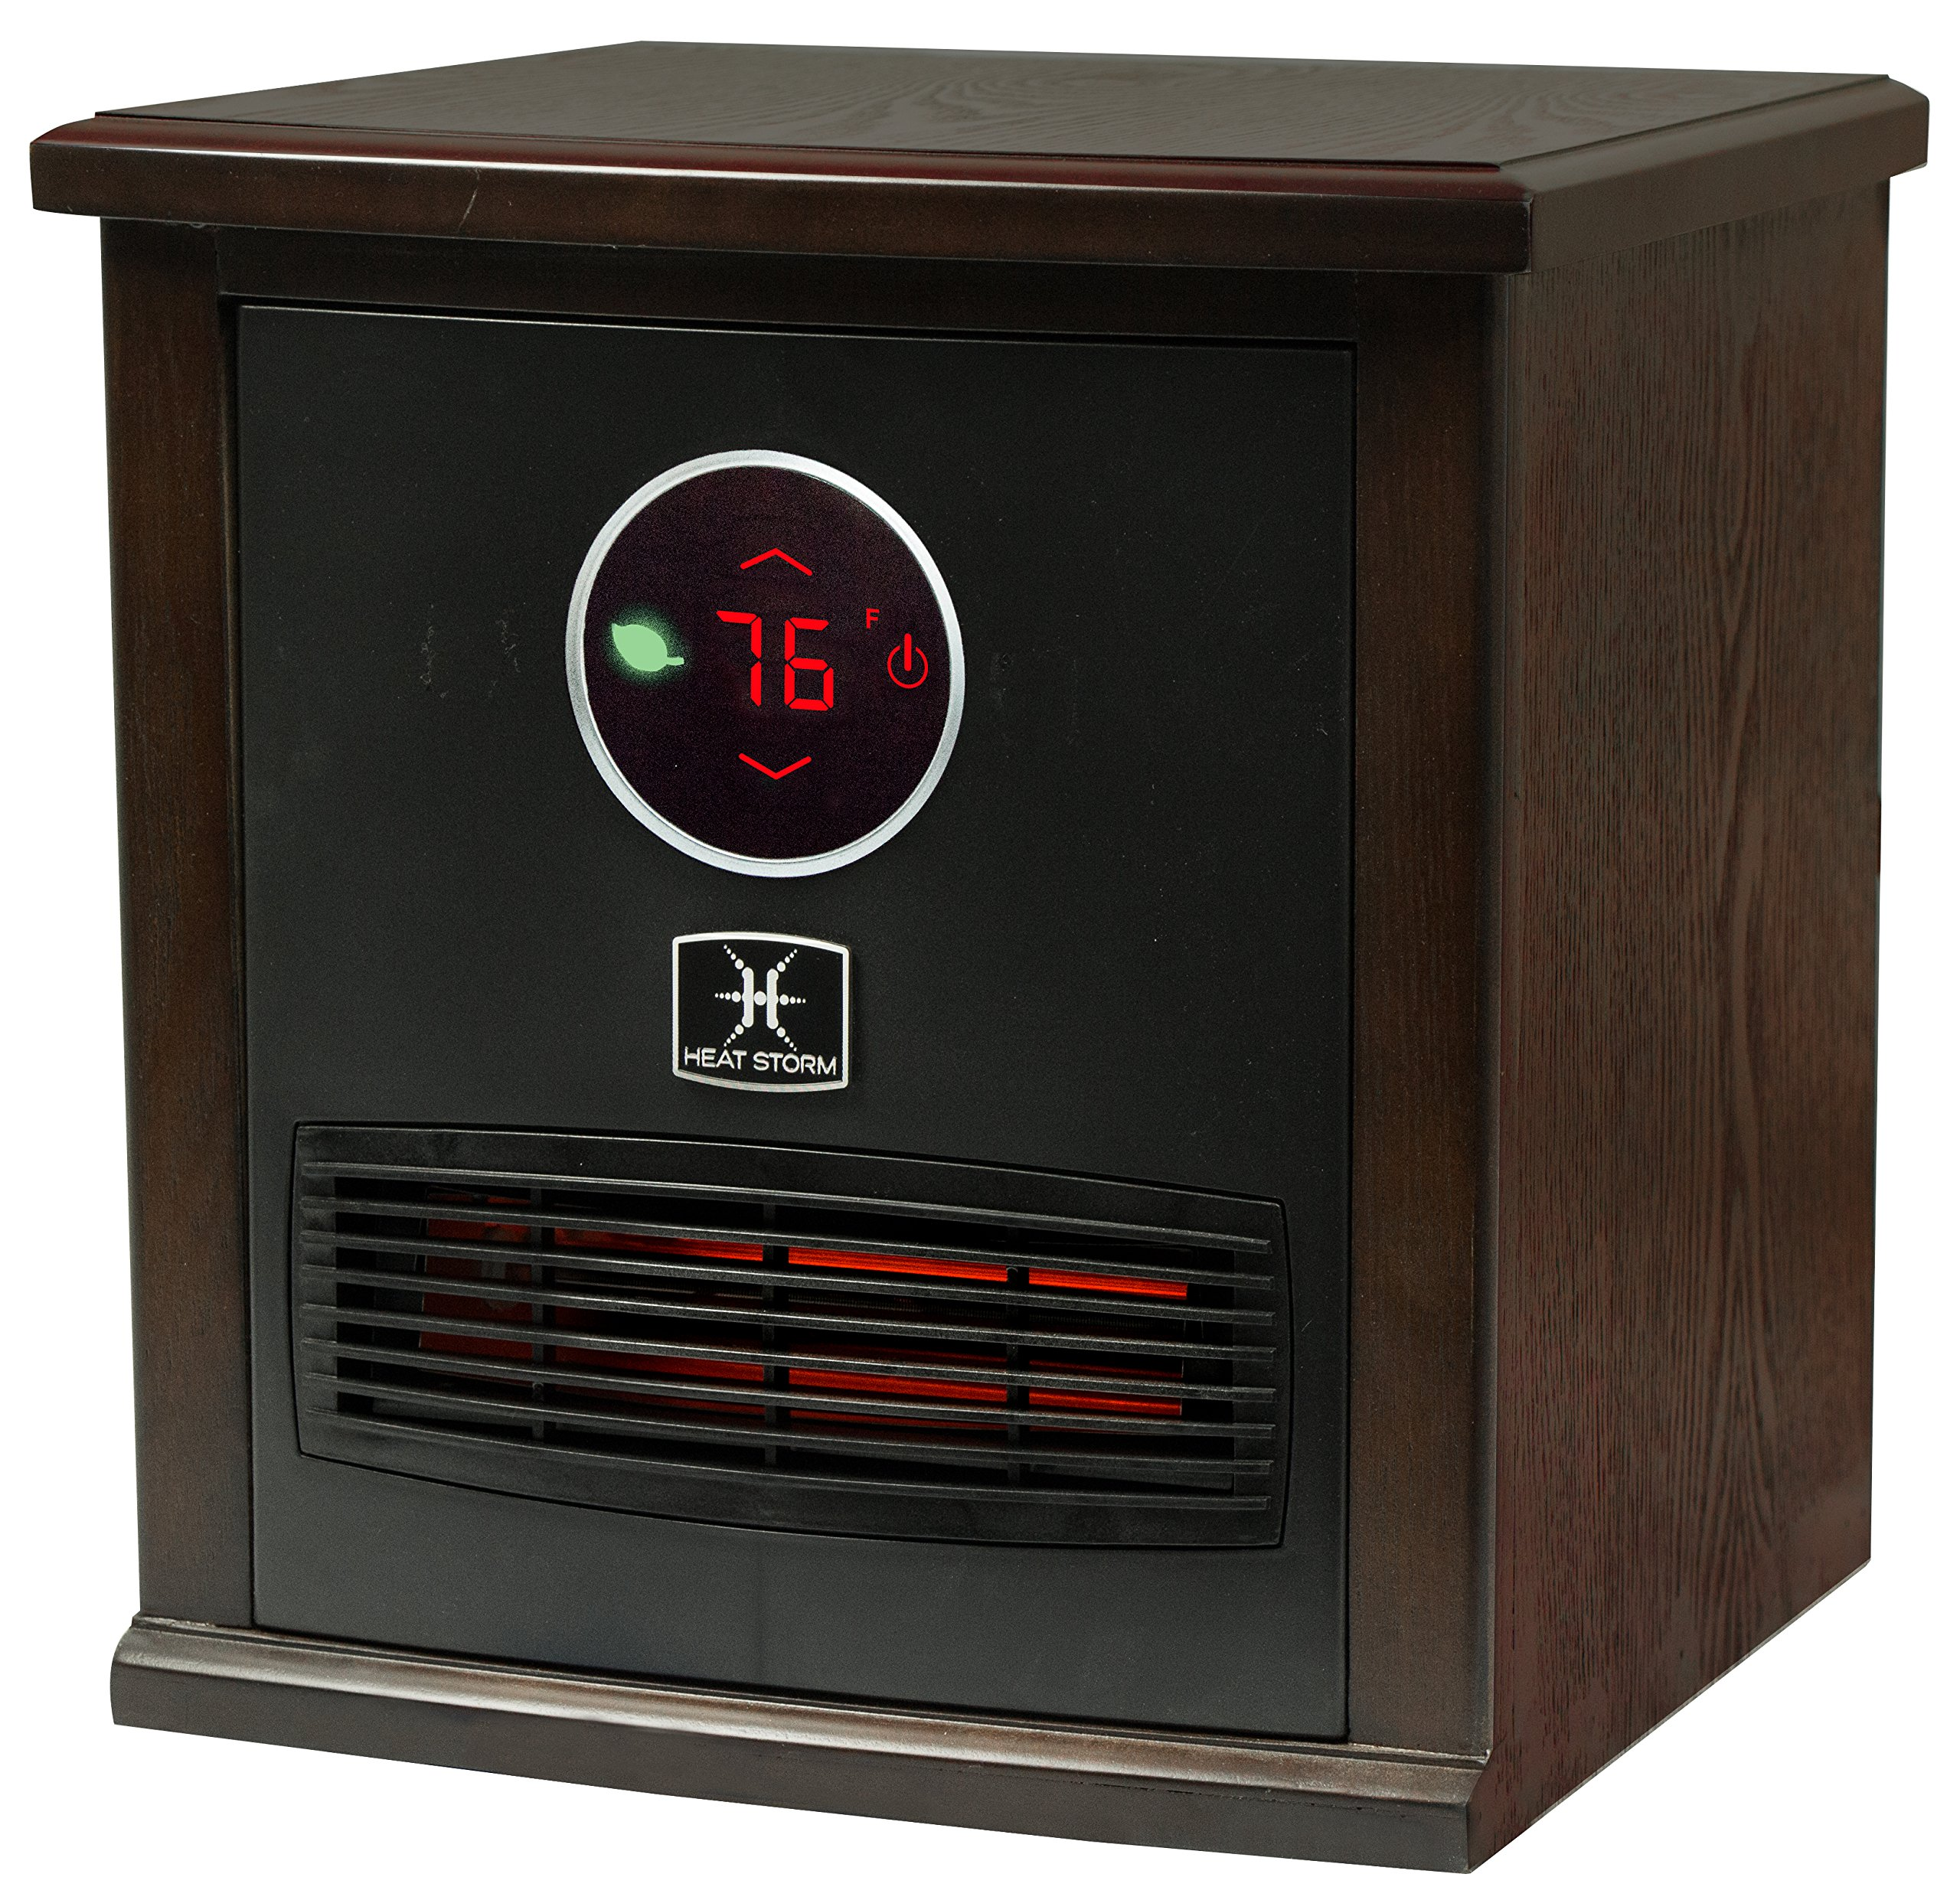 Heat Storm Smithfield Classic Indoor Portable Infrared Space Heater - 1500 Watt - Stylish - Built in Thermostat & Overheat Sensor - Remote Control - Perfect For Any Room